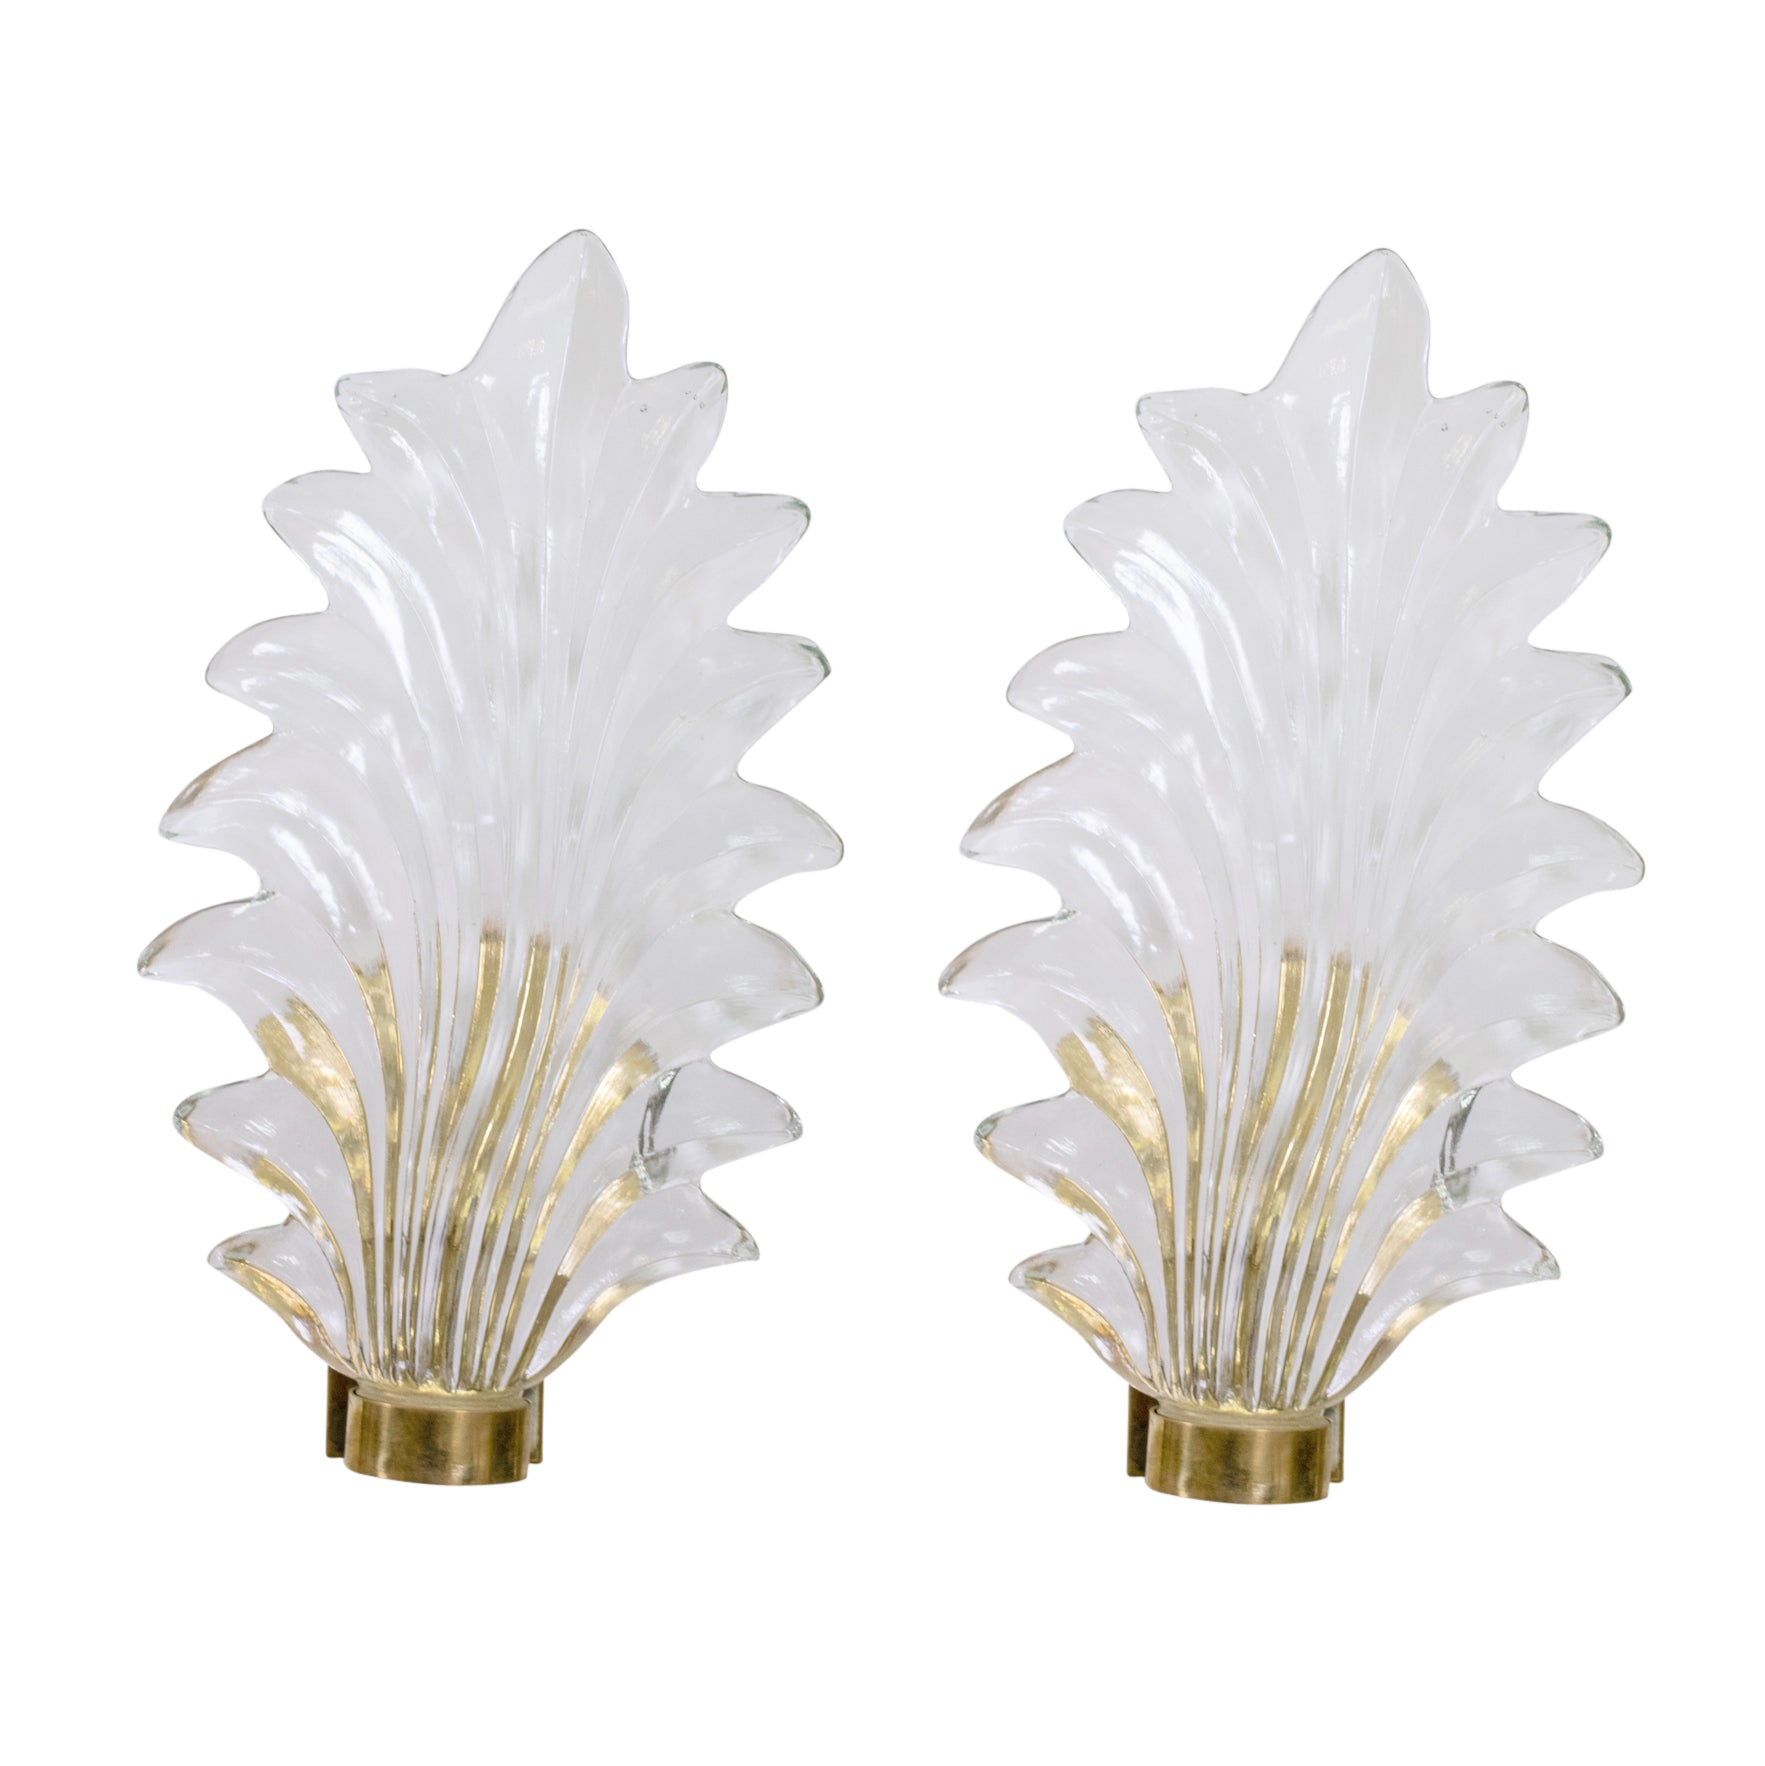 Pair of Large Murano Glass and Brass Leaf Sconces in the Style of Barovier Toso